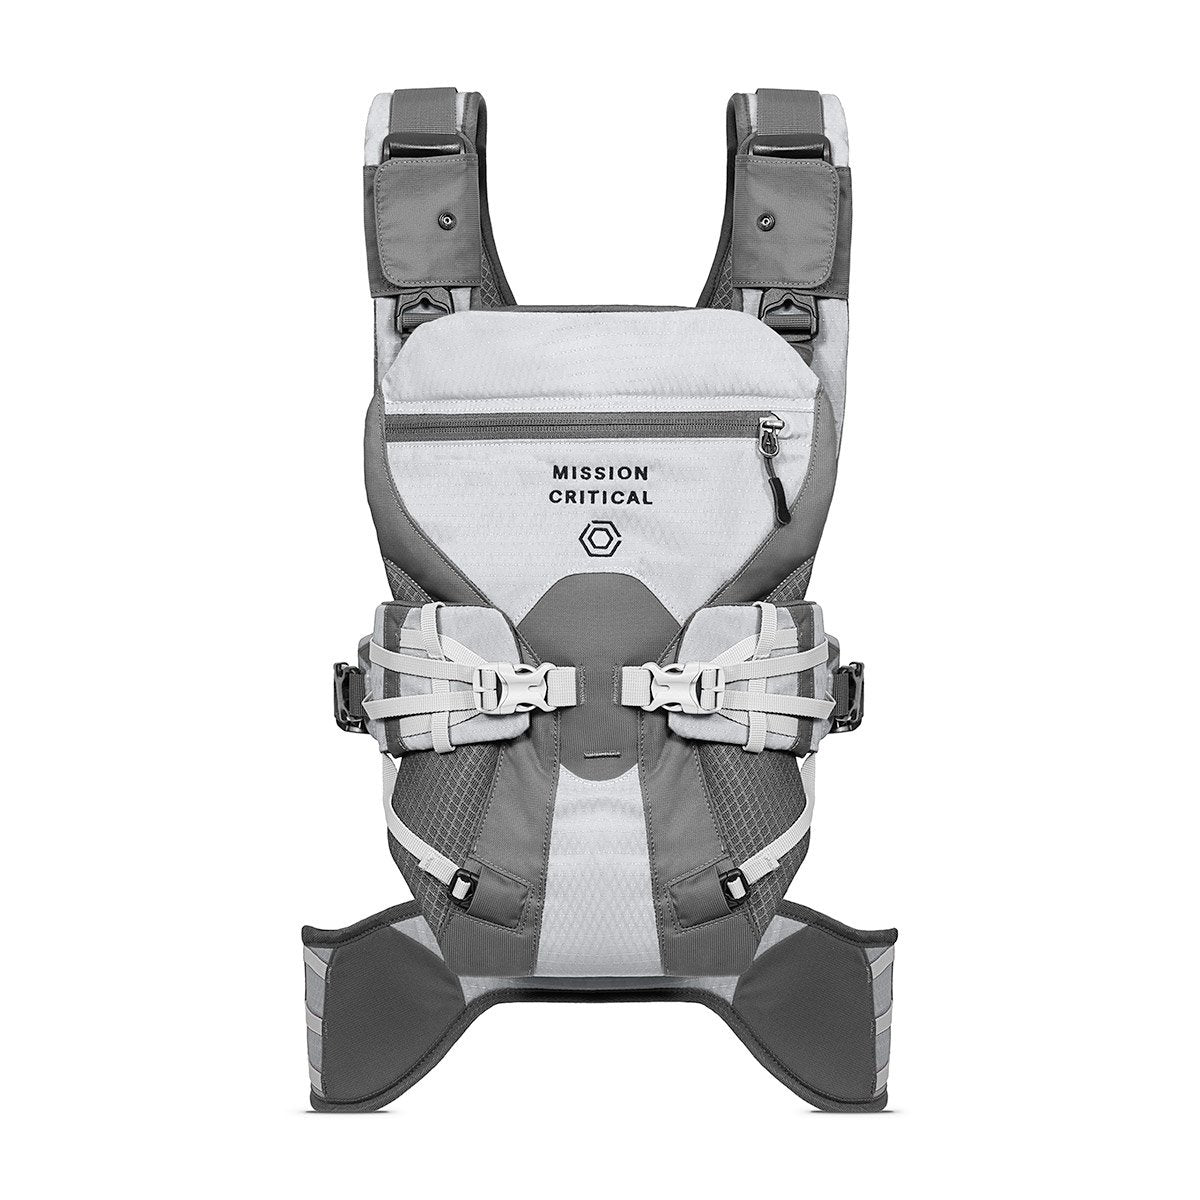 S.02 Baby Carrier Expedition Kit